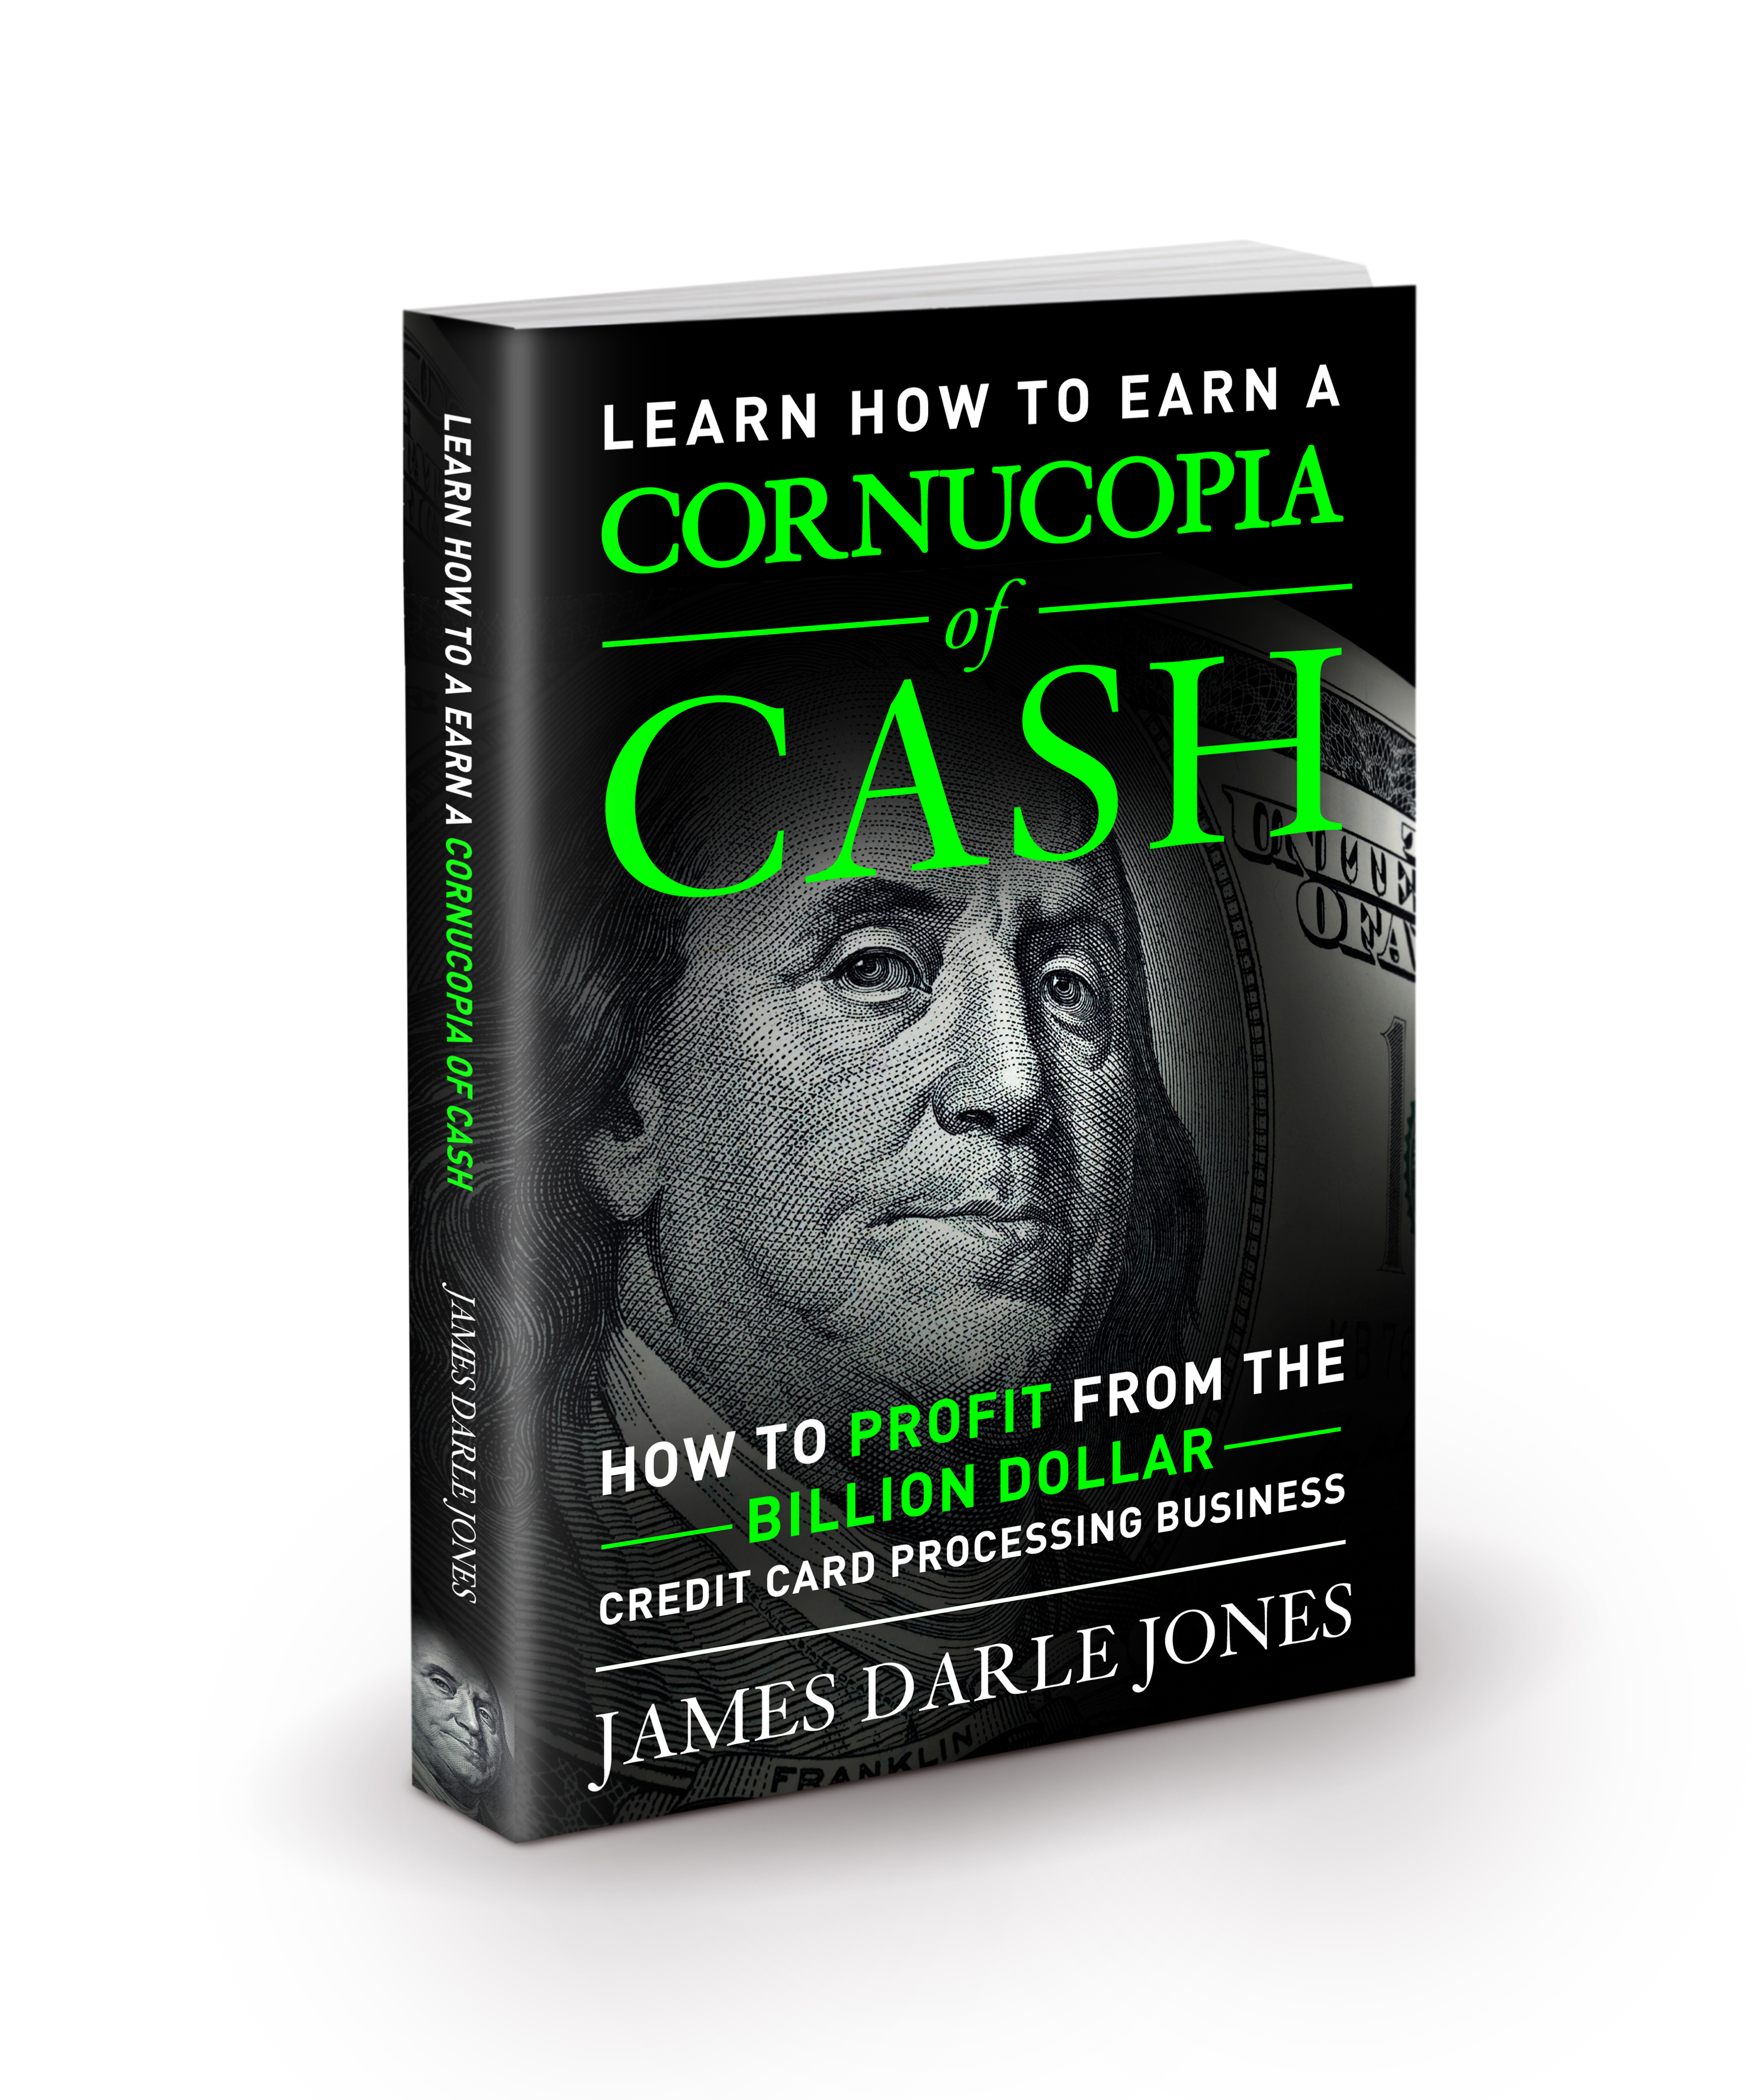 """Cornucopia of Cash"" How to Profit from the Billion Dollar Credit Card Processing Business By: James Darle Jones"